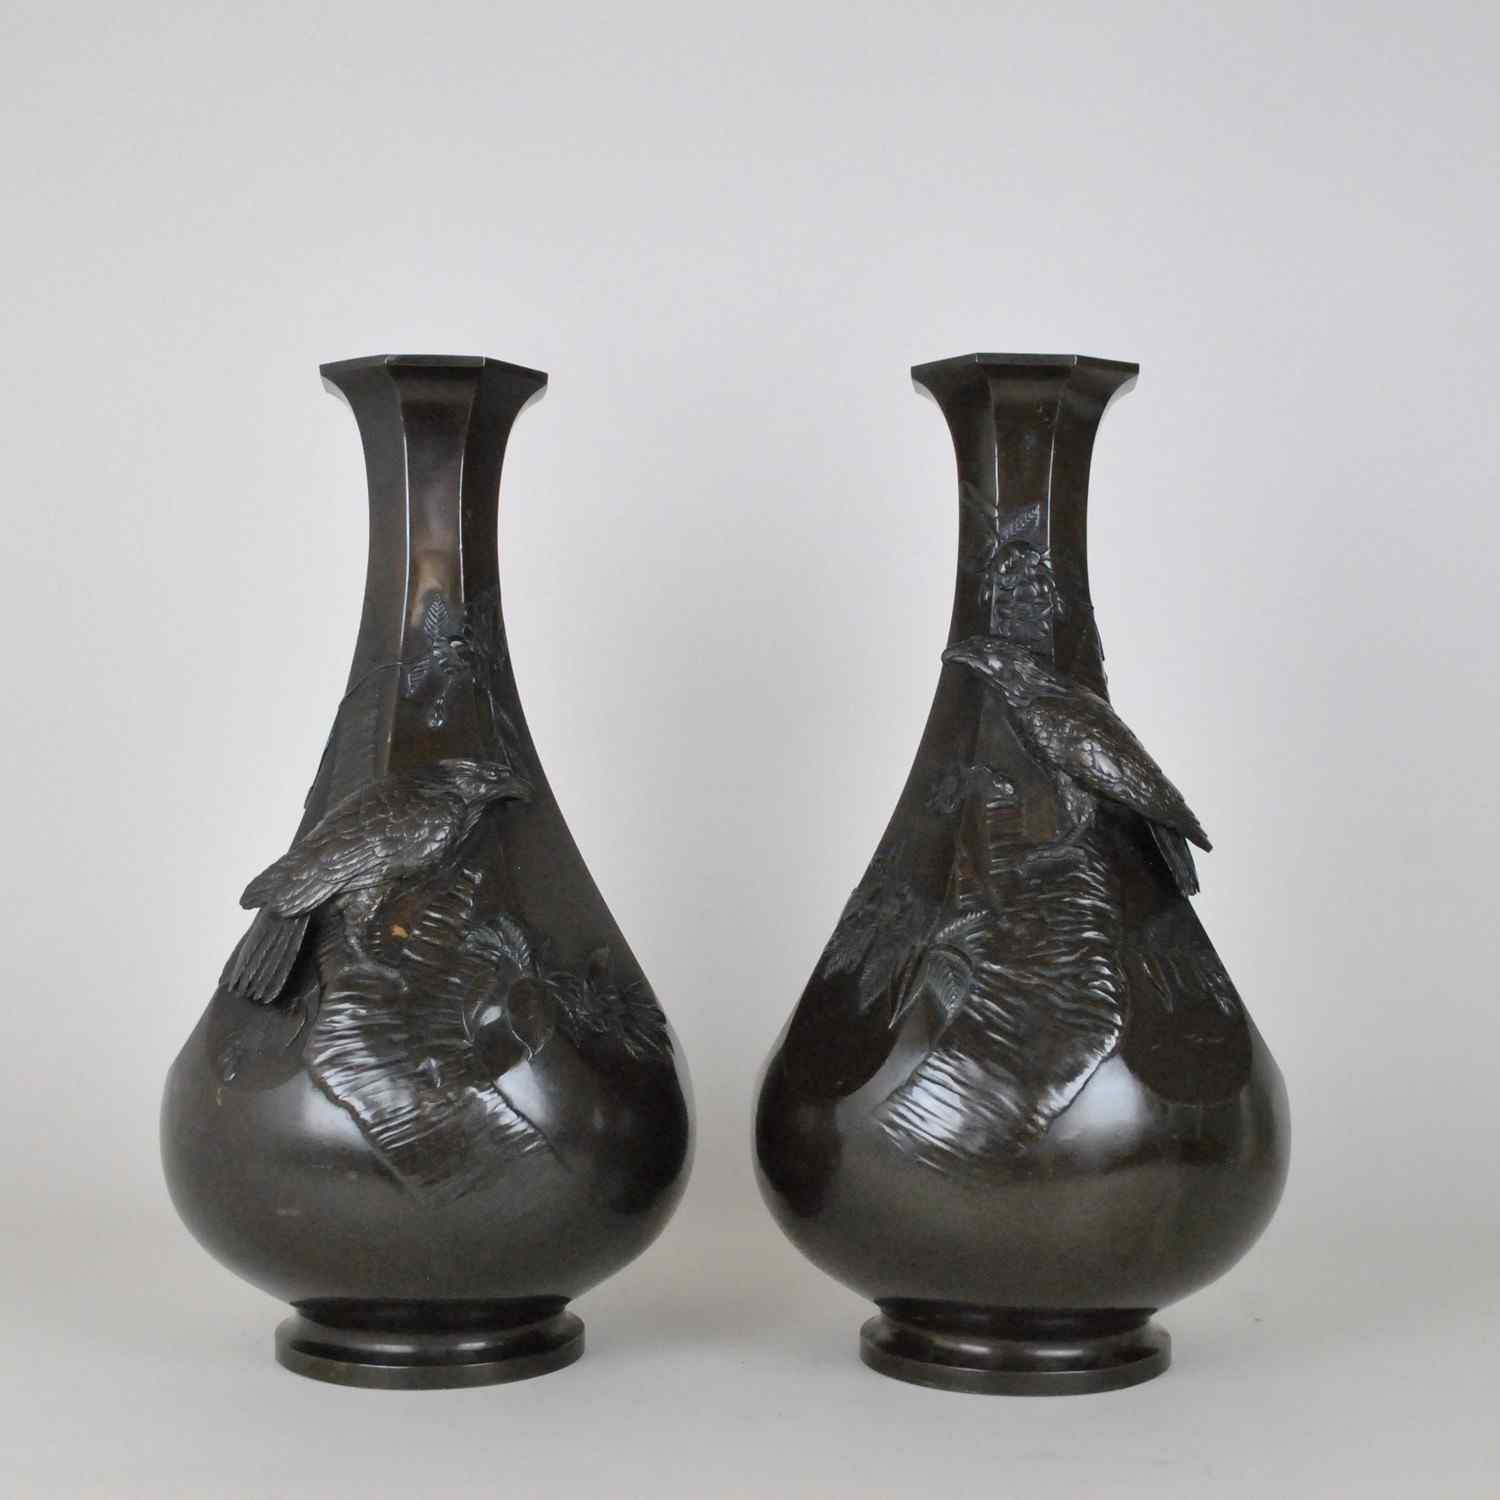 Pair of bronze vases with eagles, Meiji, Japan